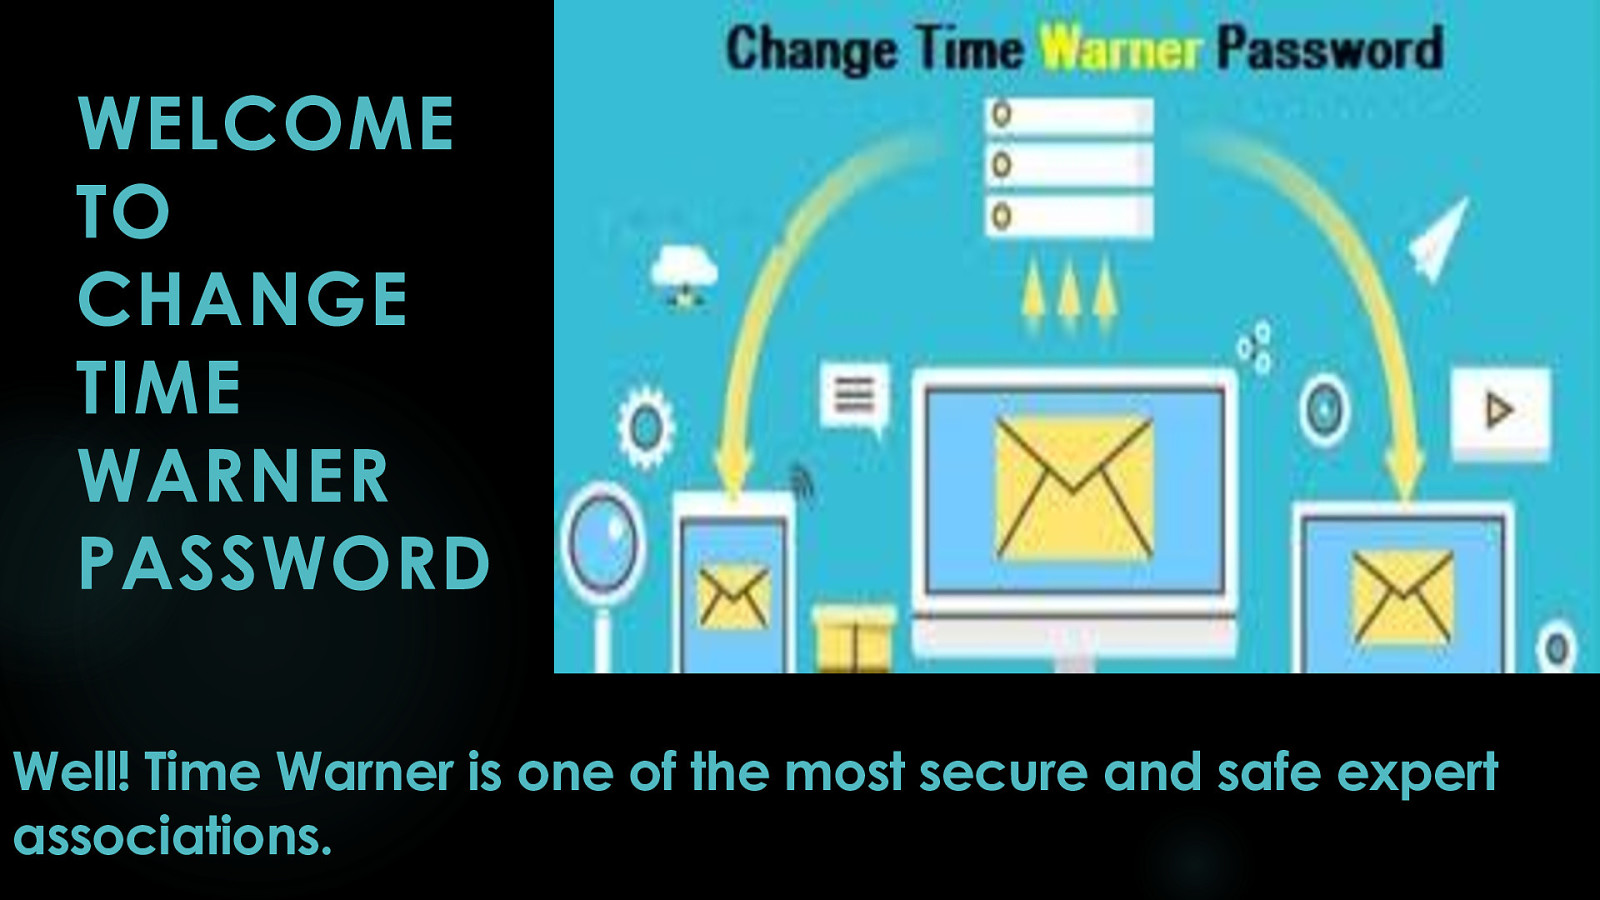 Dial +1 (866) 748-5444 For Change Time Warner Password